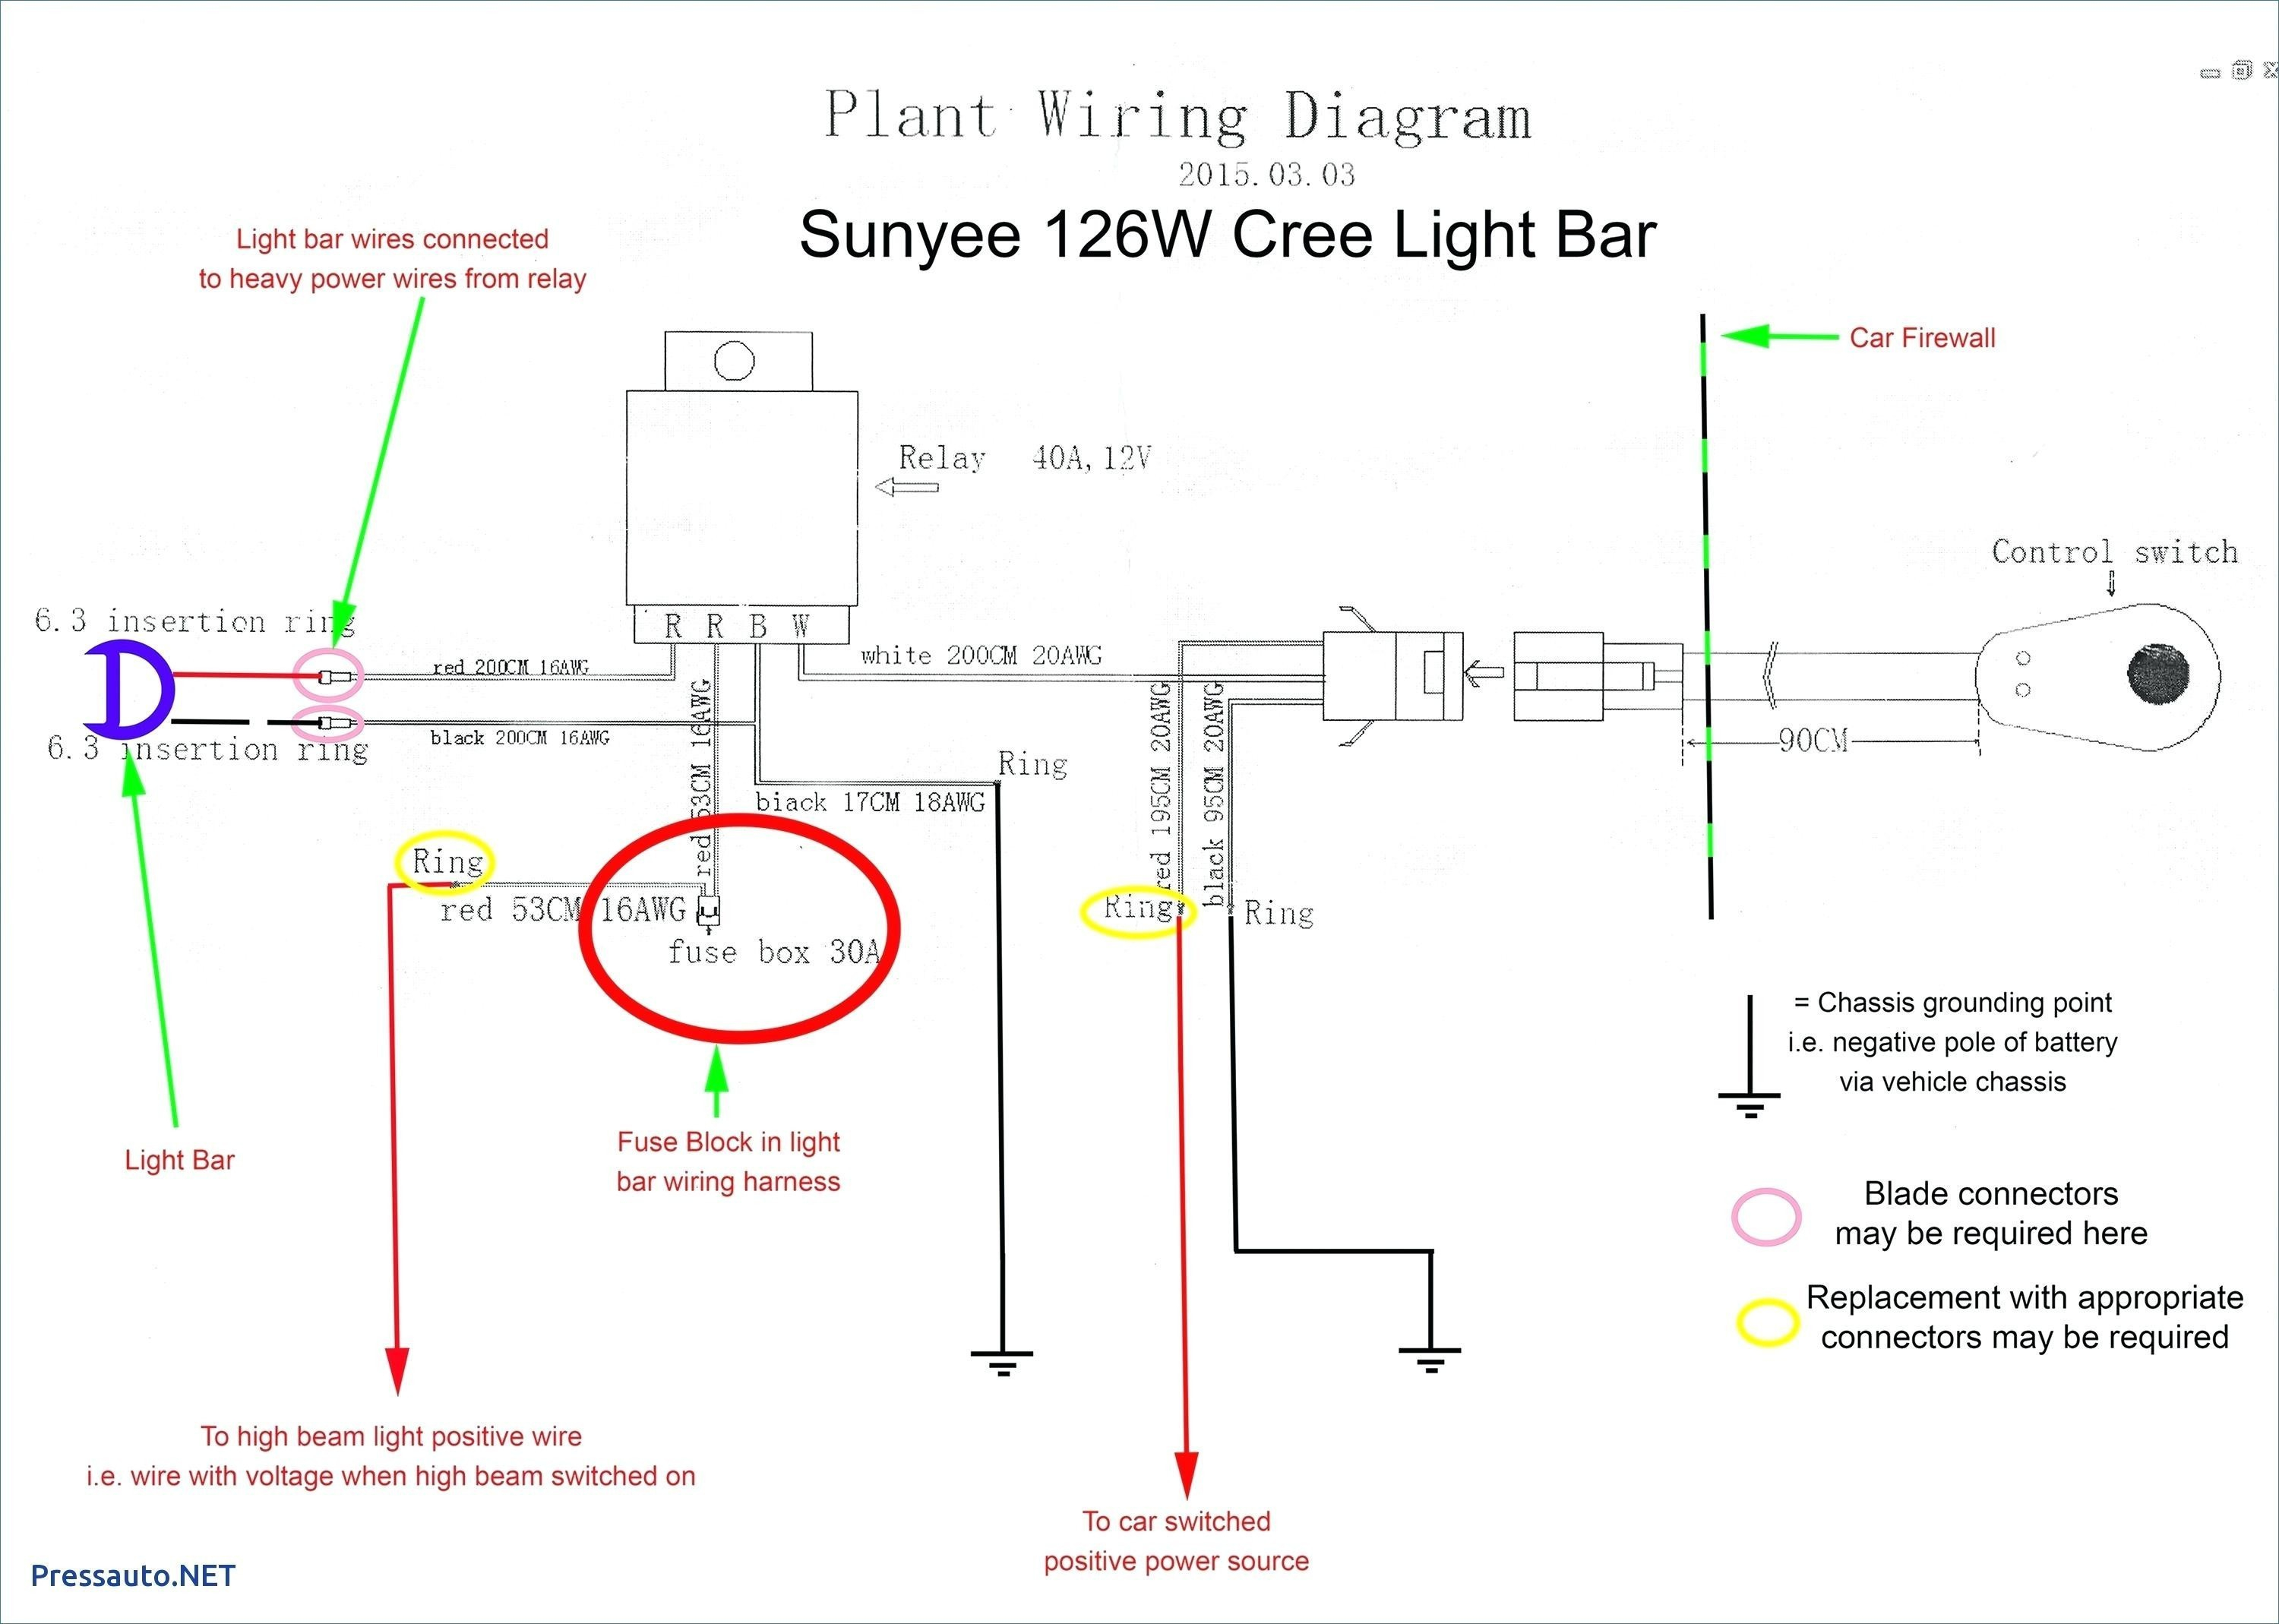 Wiring Diagram For Fluorescent Lights With Carport - Wiring Diagrams - Fluorescent Light Wiring Diagram